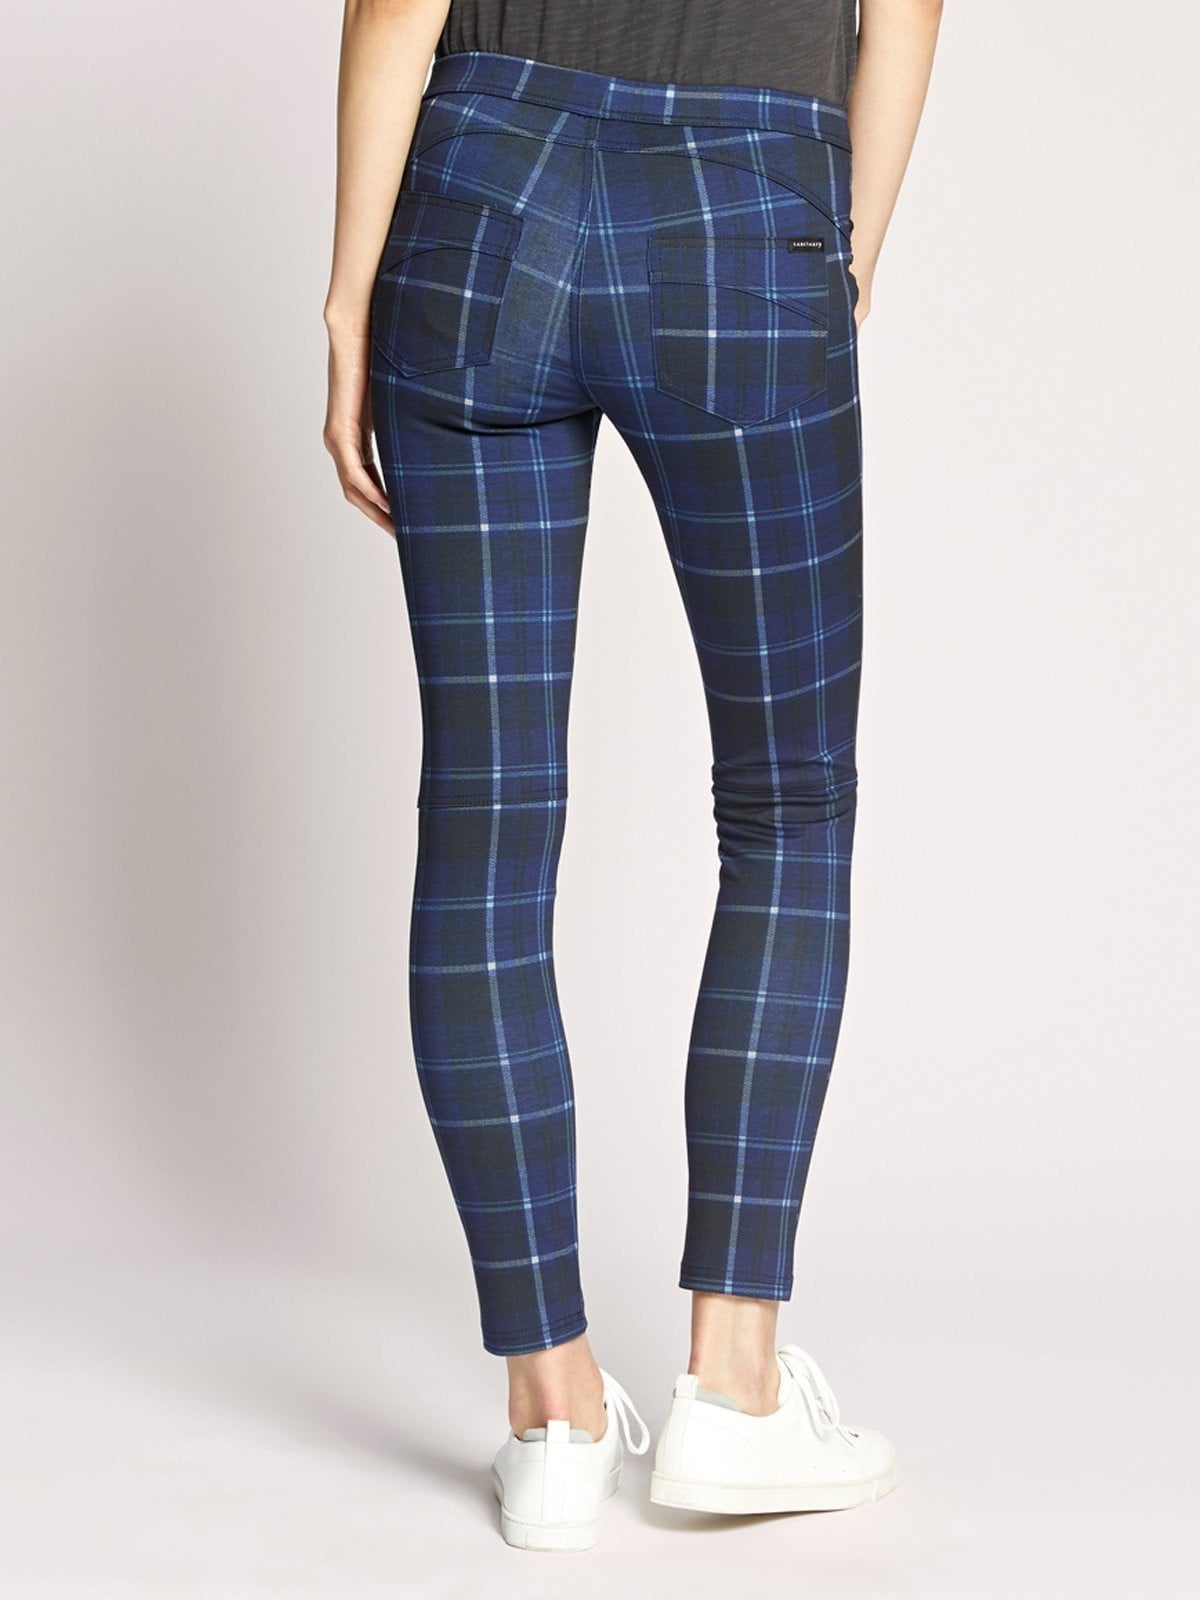 Grease Legging | Electric Blue Plaid